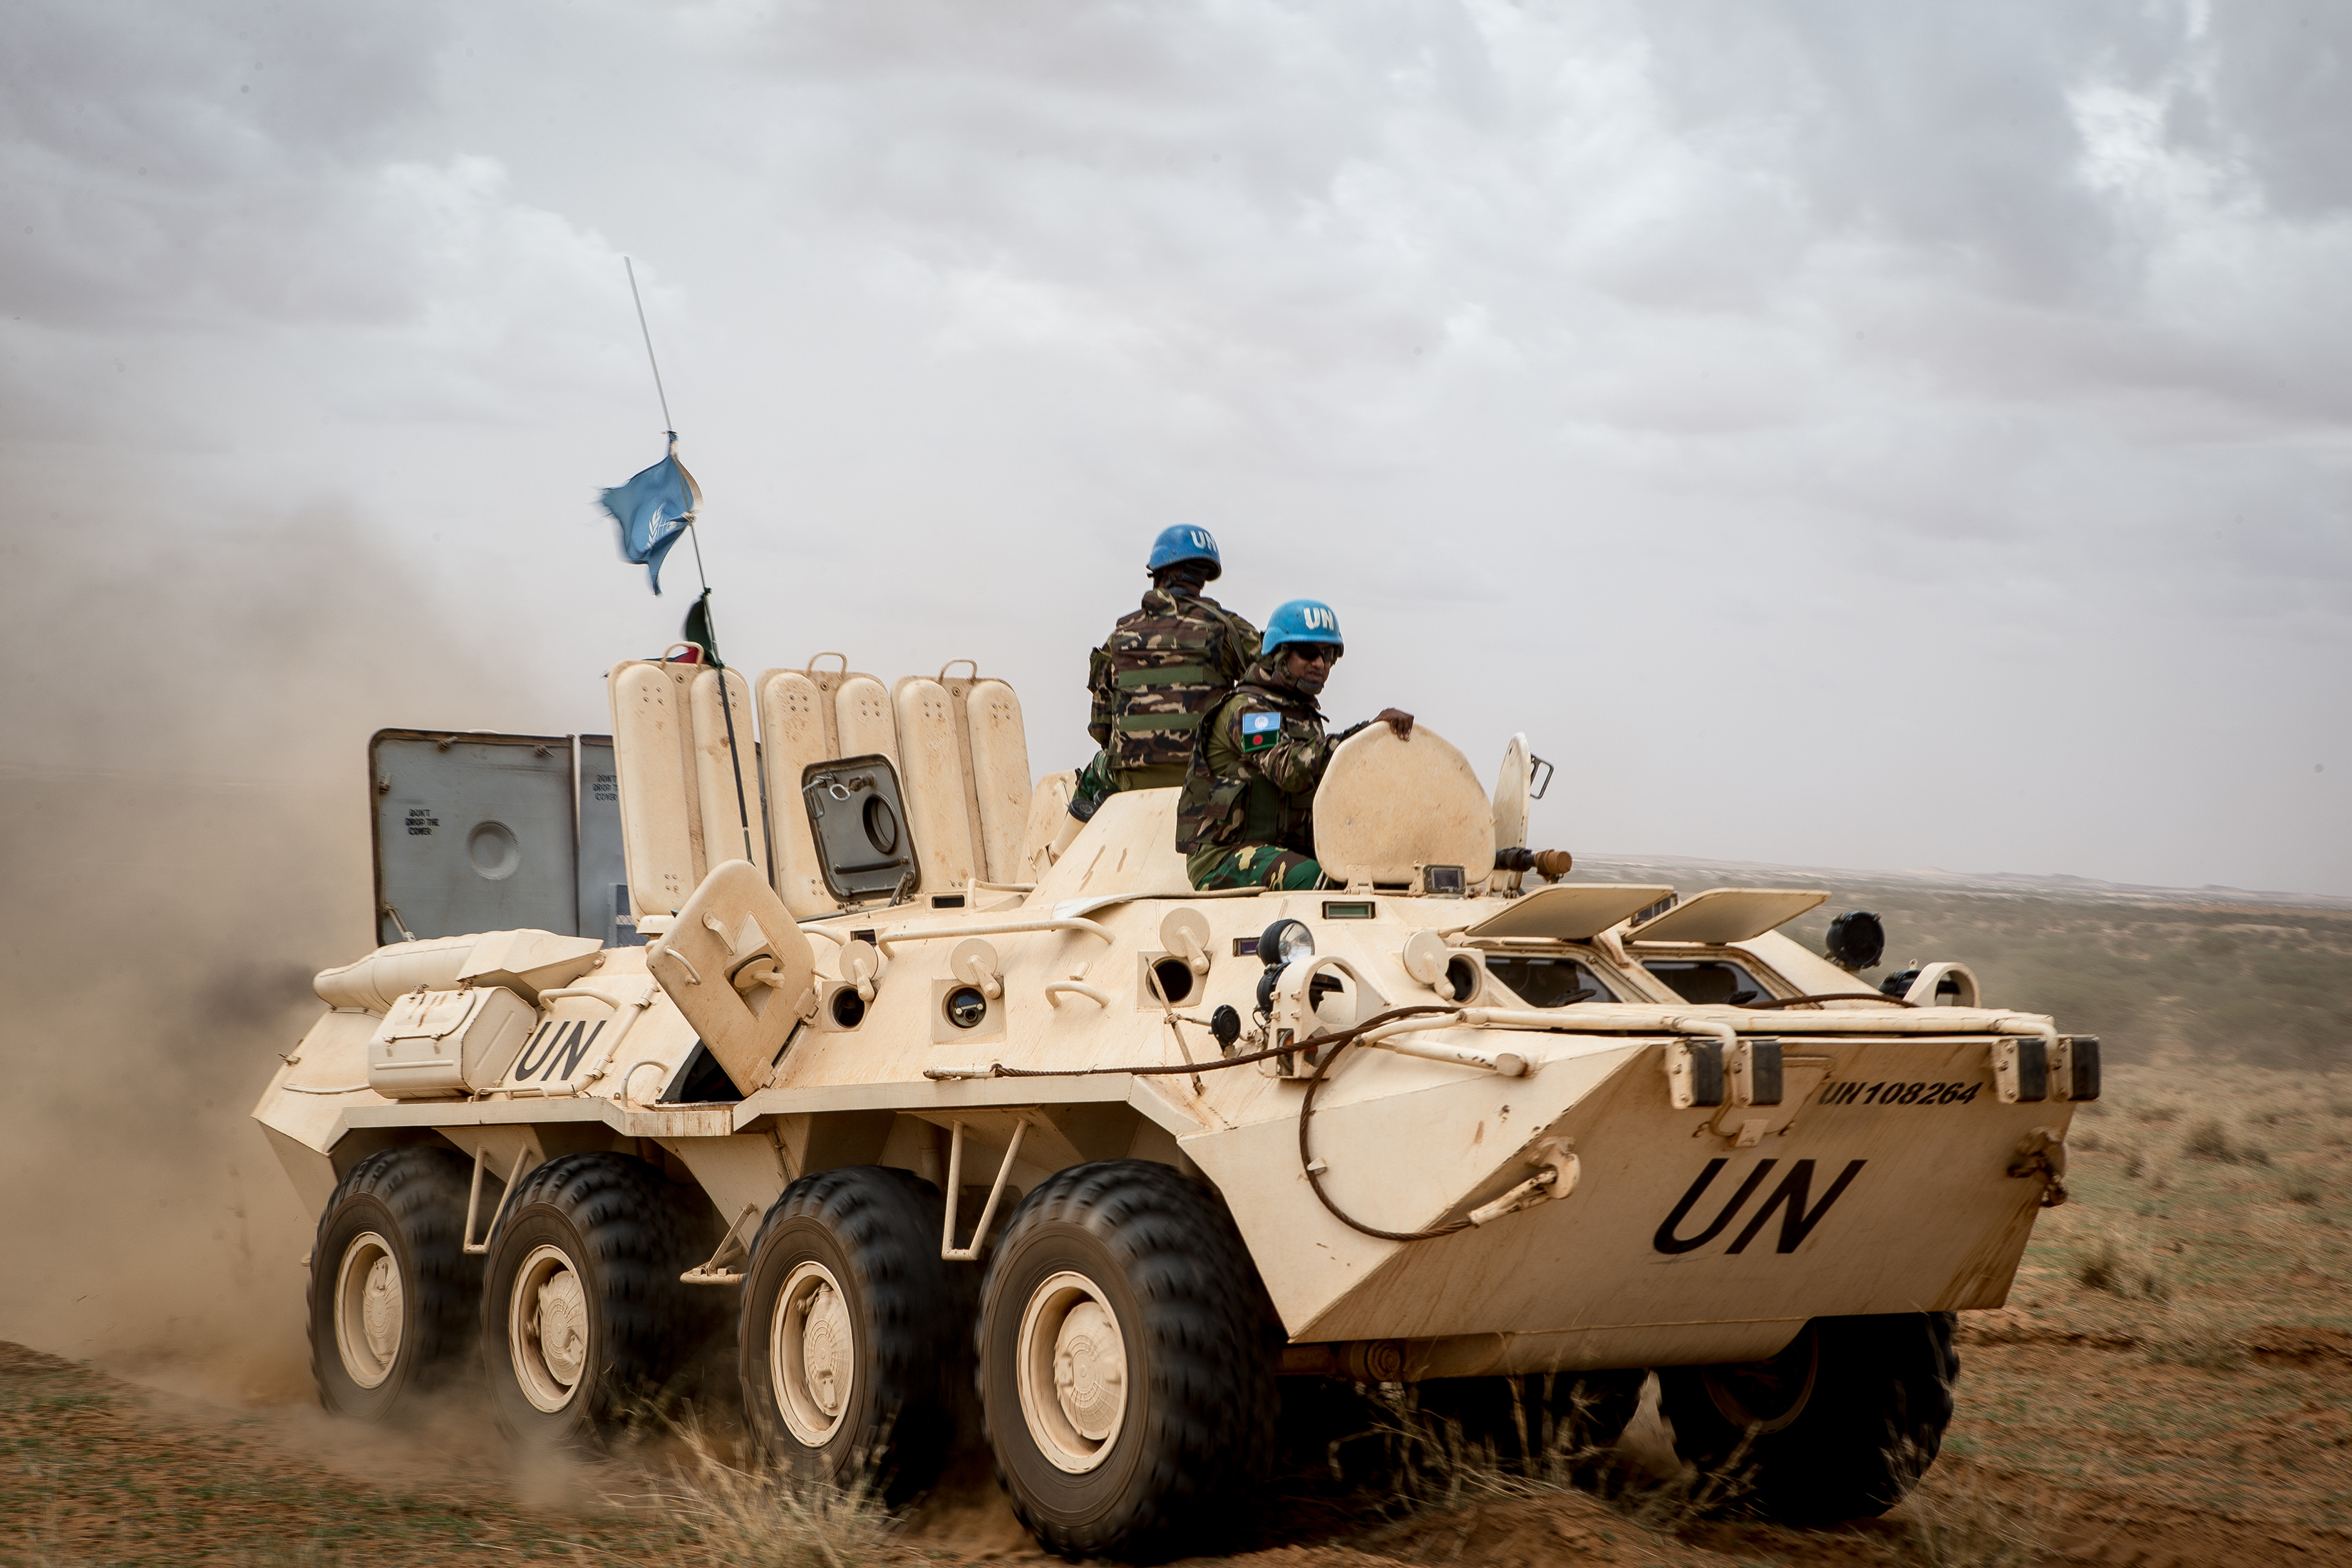 MINUSMA Peacekeepers, during Operation Military 'FRELANA' to protect civilians and their property.